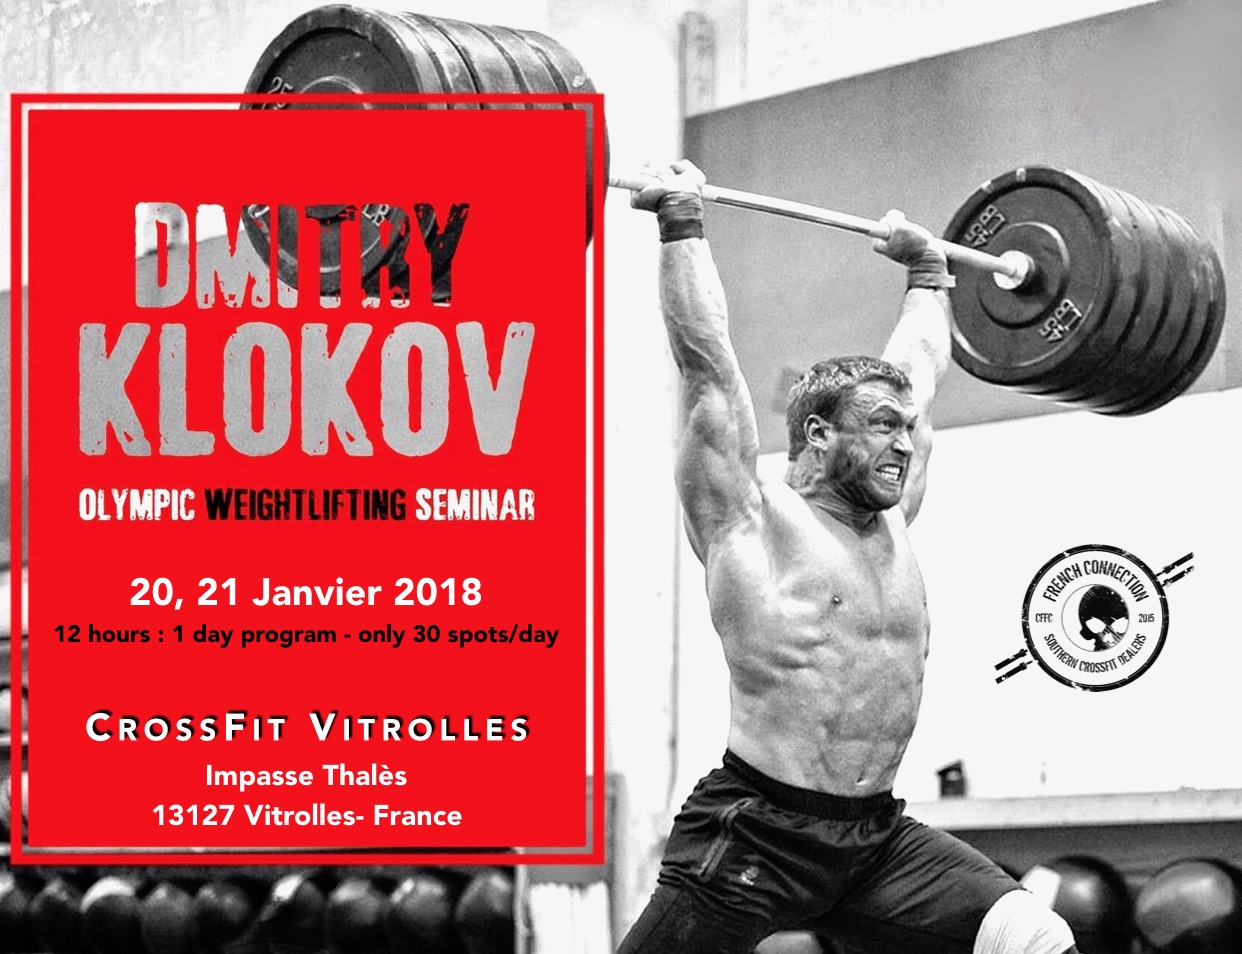 Dmitry Klokov chez CrossFit French Connection